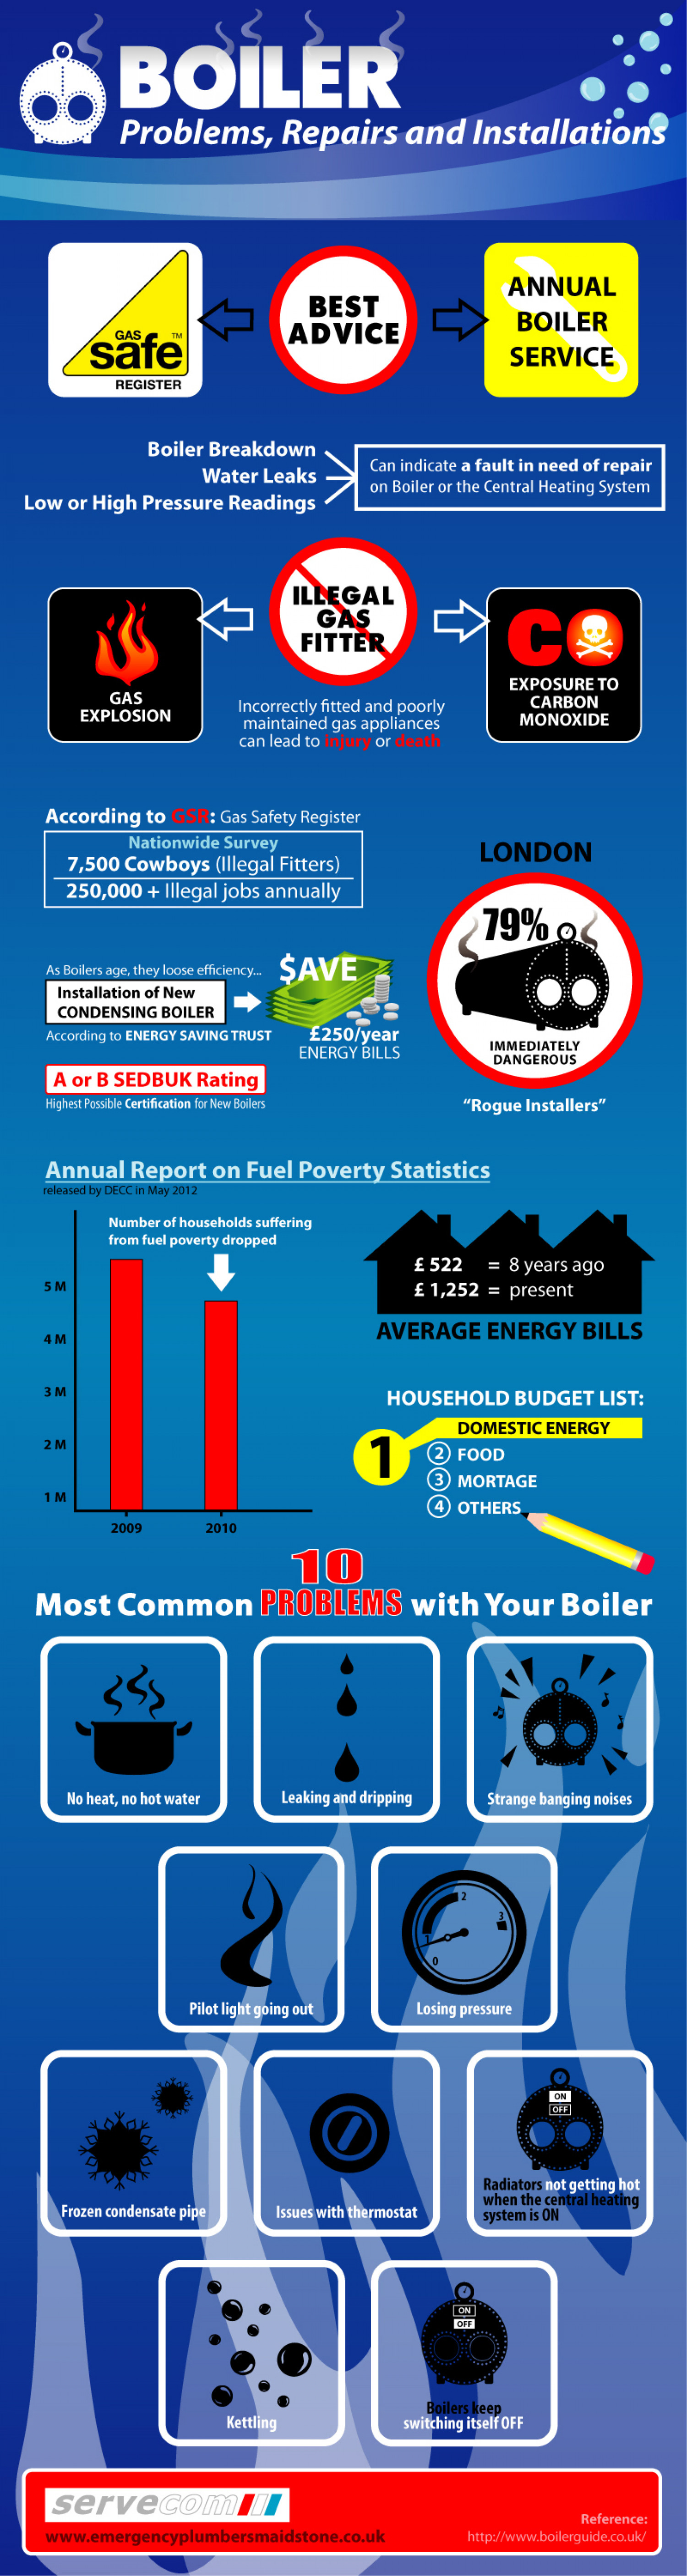 Boiler Problems, Repairs and Installations Infographic